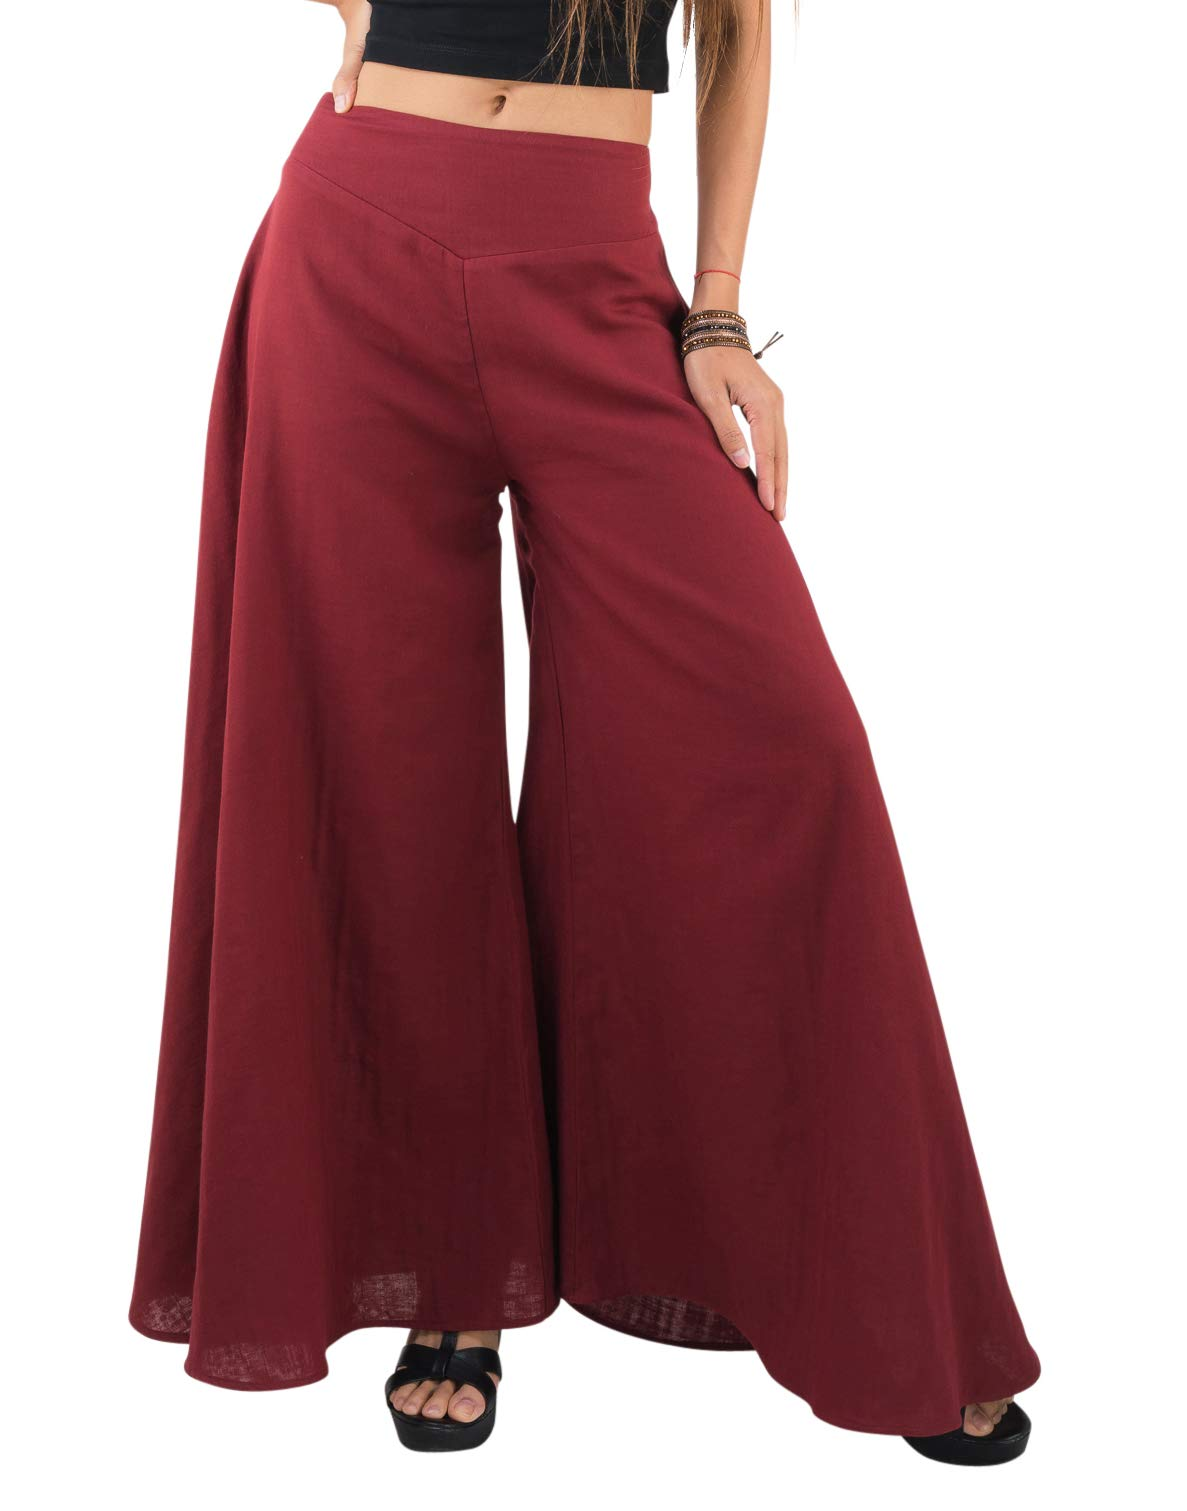 Tropic Bliss Women's Wide Leg Organic Cotton Palazzo Pants in Red, S